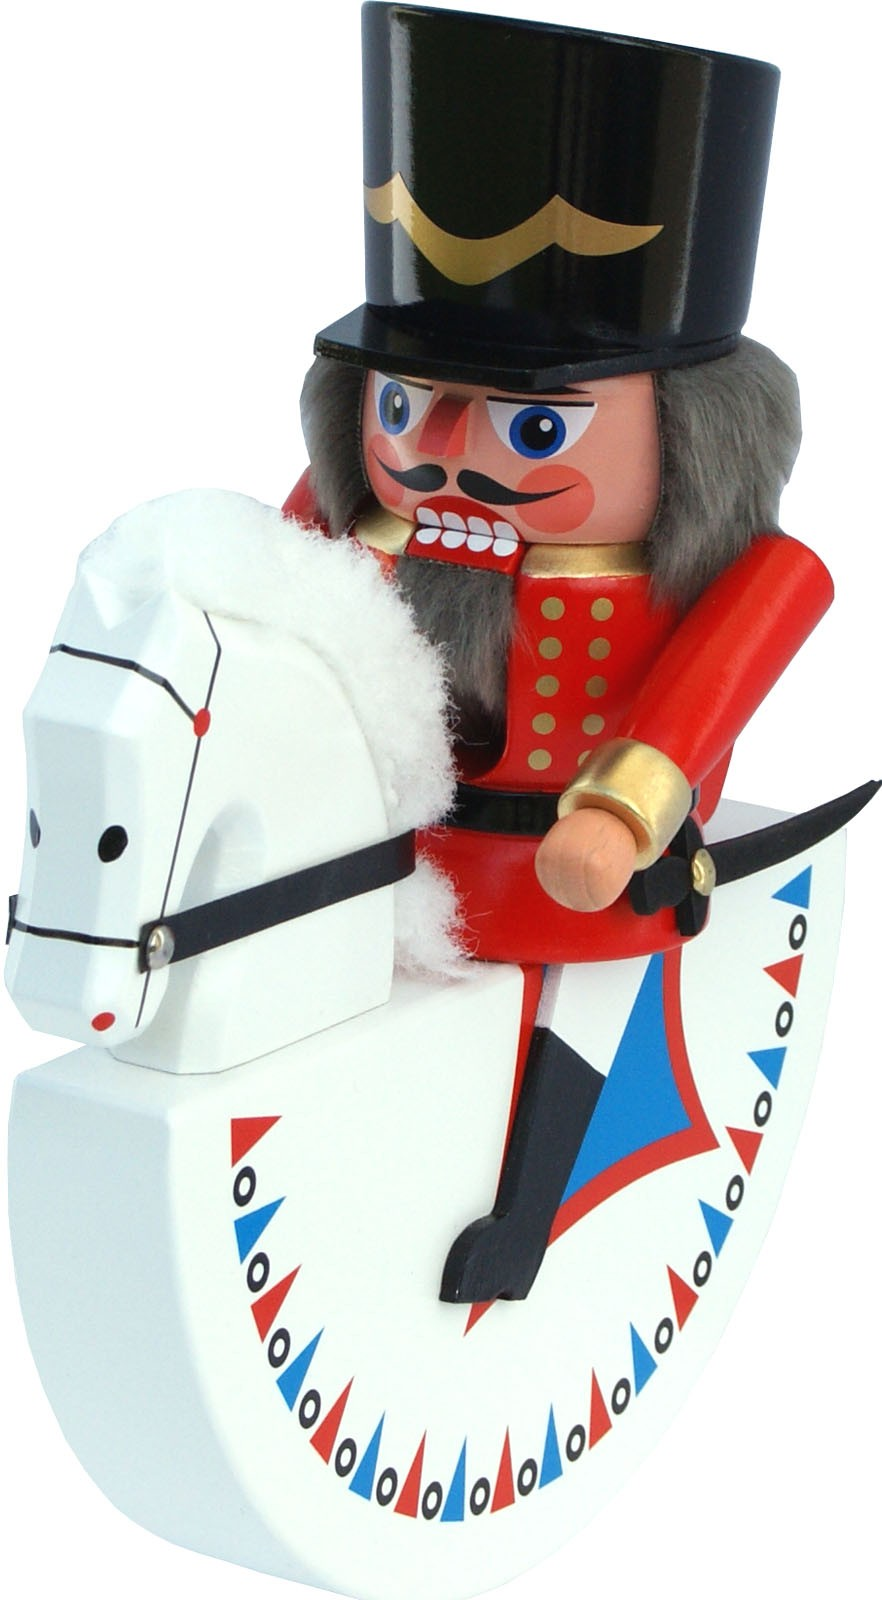 Original Olbernhauer rider - hussar, Nutcracker, red, small